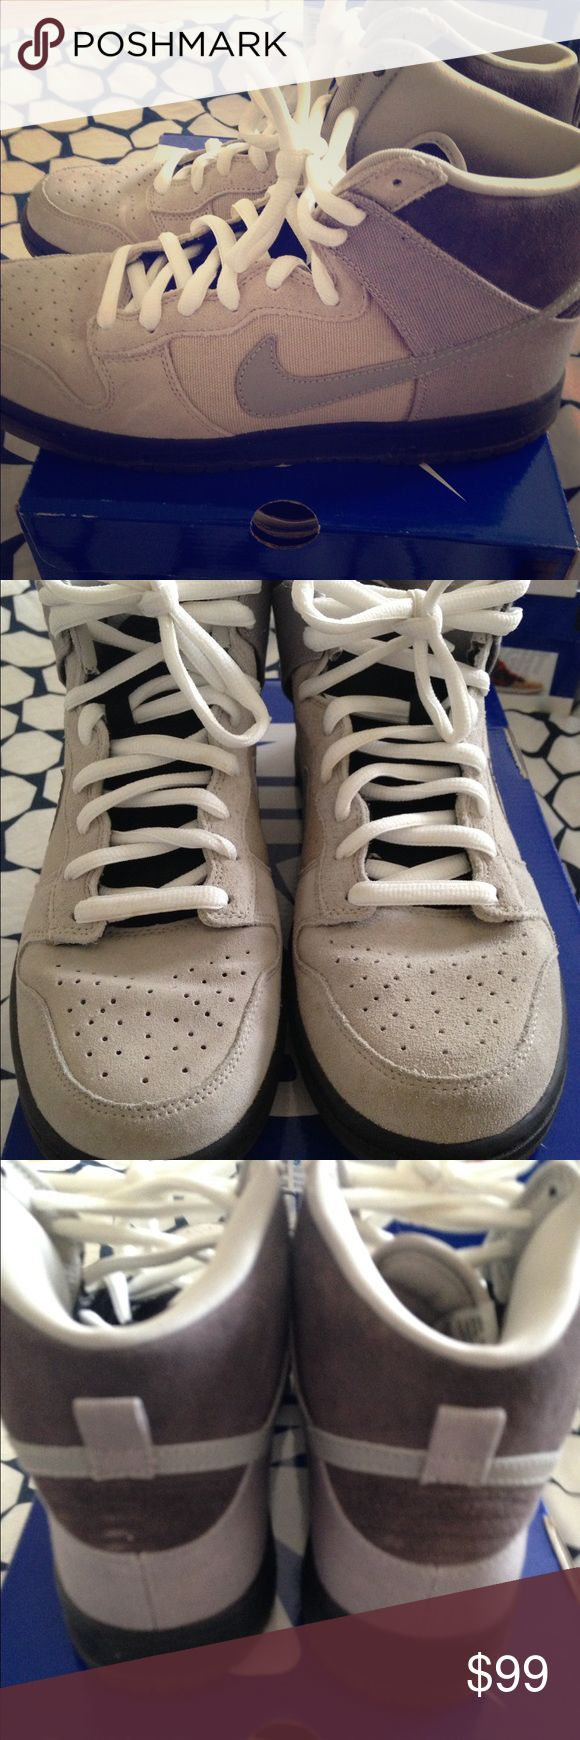 Nike Dunk High Pro SB Comes with box.  Worn once. Nike Shoes